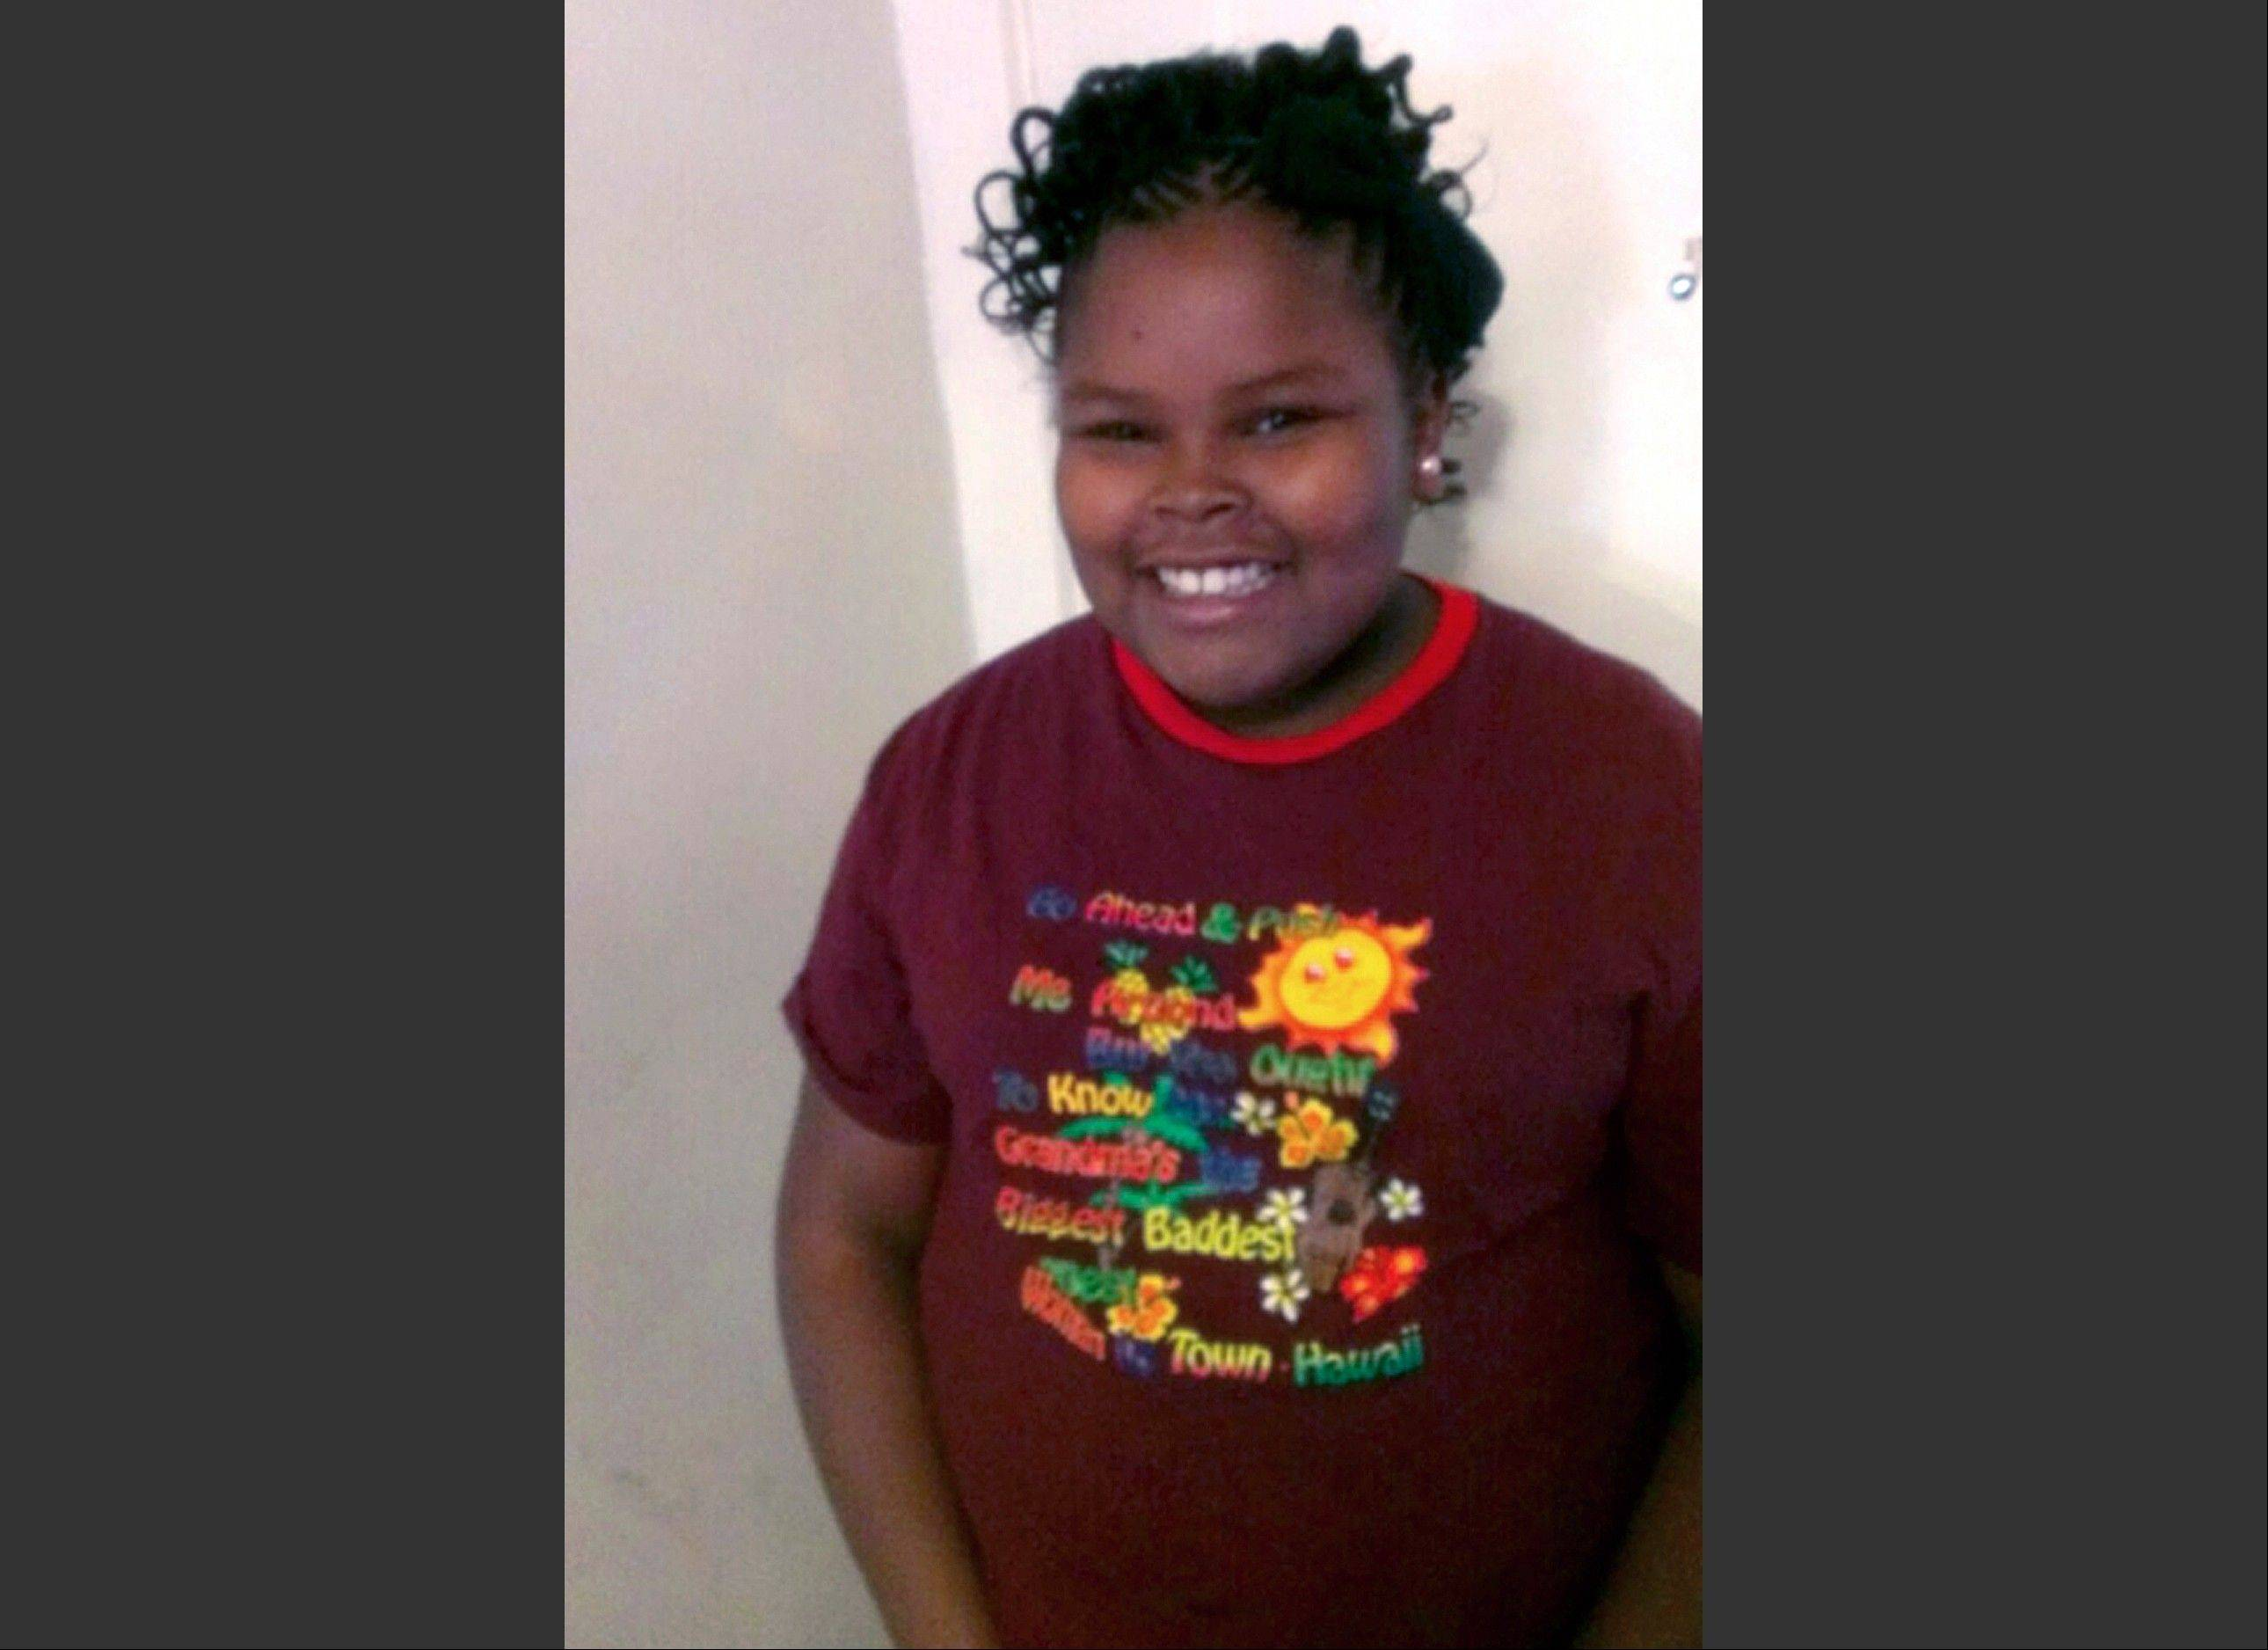 The 13-year-old California girl declared brain dead after a tonsillectomy has been taken out of Children's Hospital of Oakland, her family's attorney said late Sunday. Jahi McMath left the hospital in a private ambulance shortly before 8 p.m. Sunday, Christopher Dolan told The Associated Press.